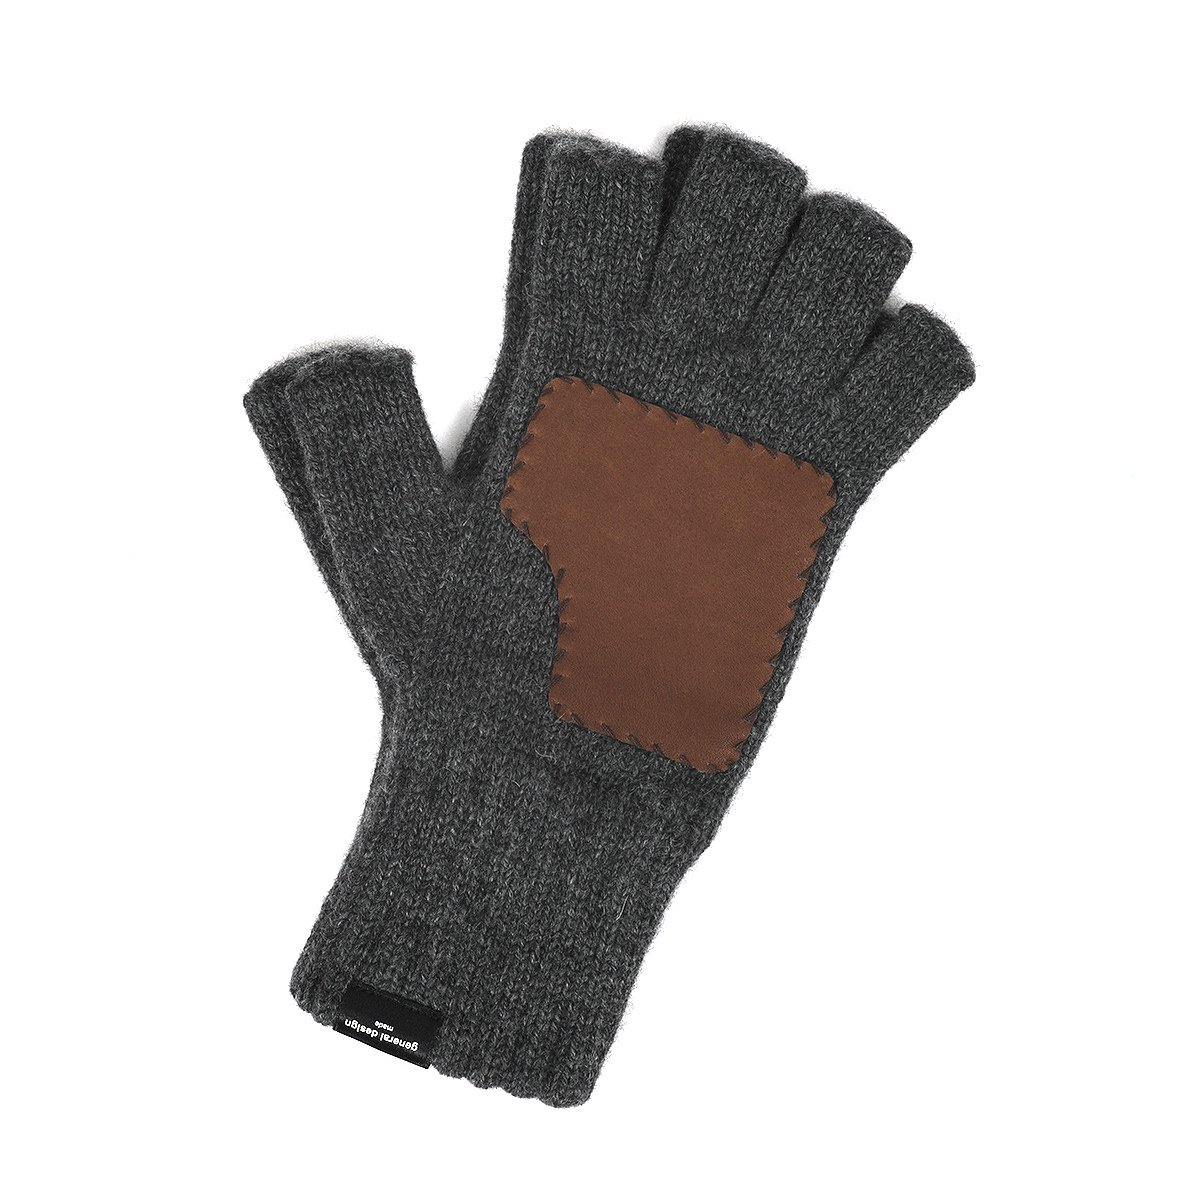 CASHMERE FINGERLESS GLOVE 詳細画像3